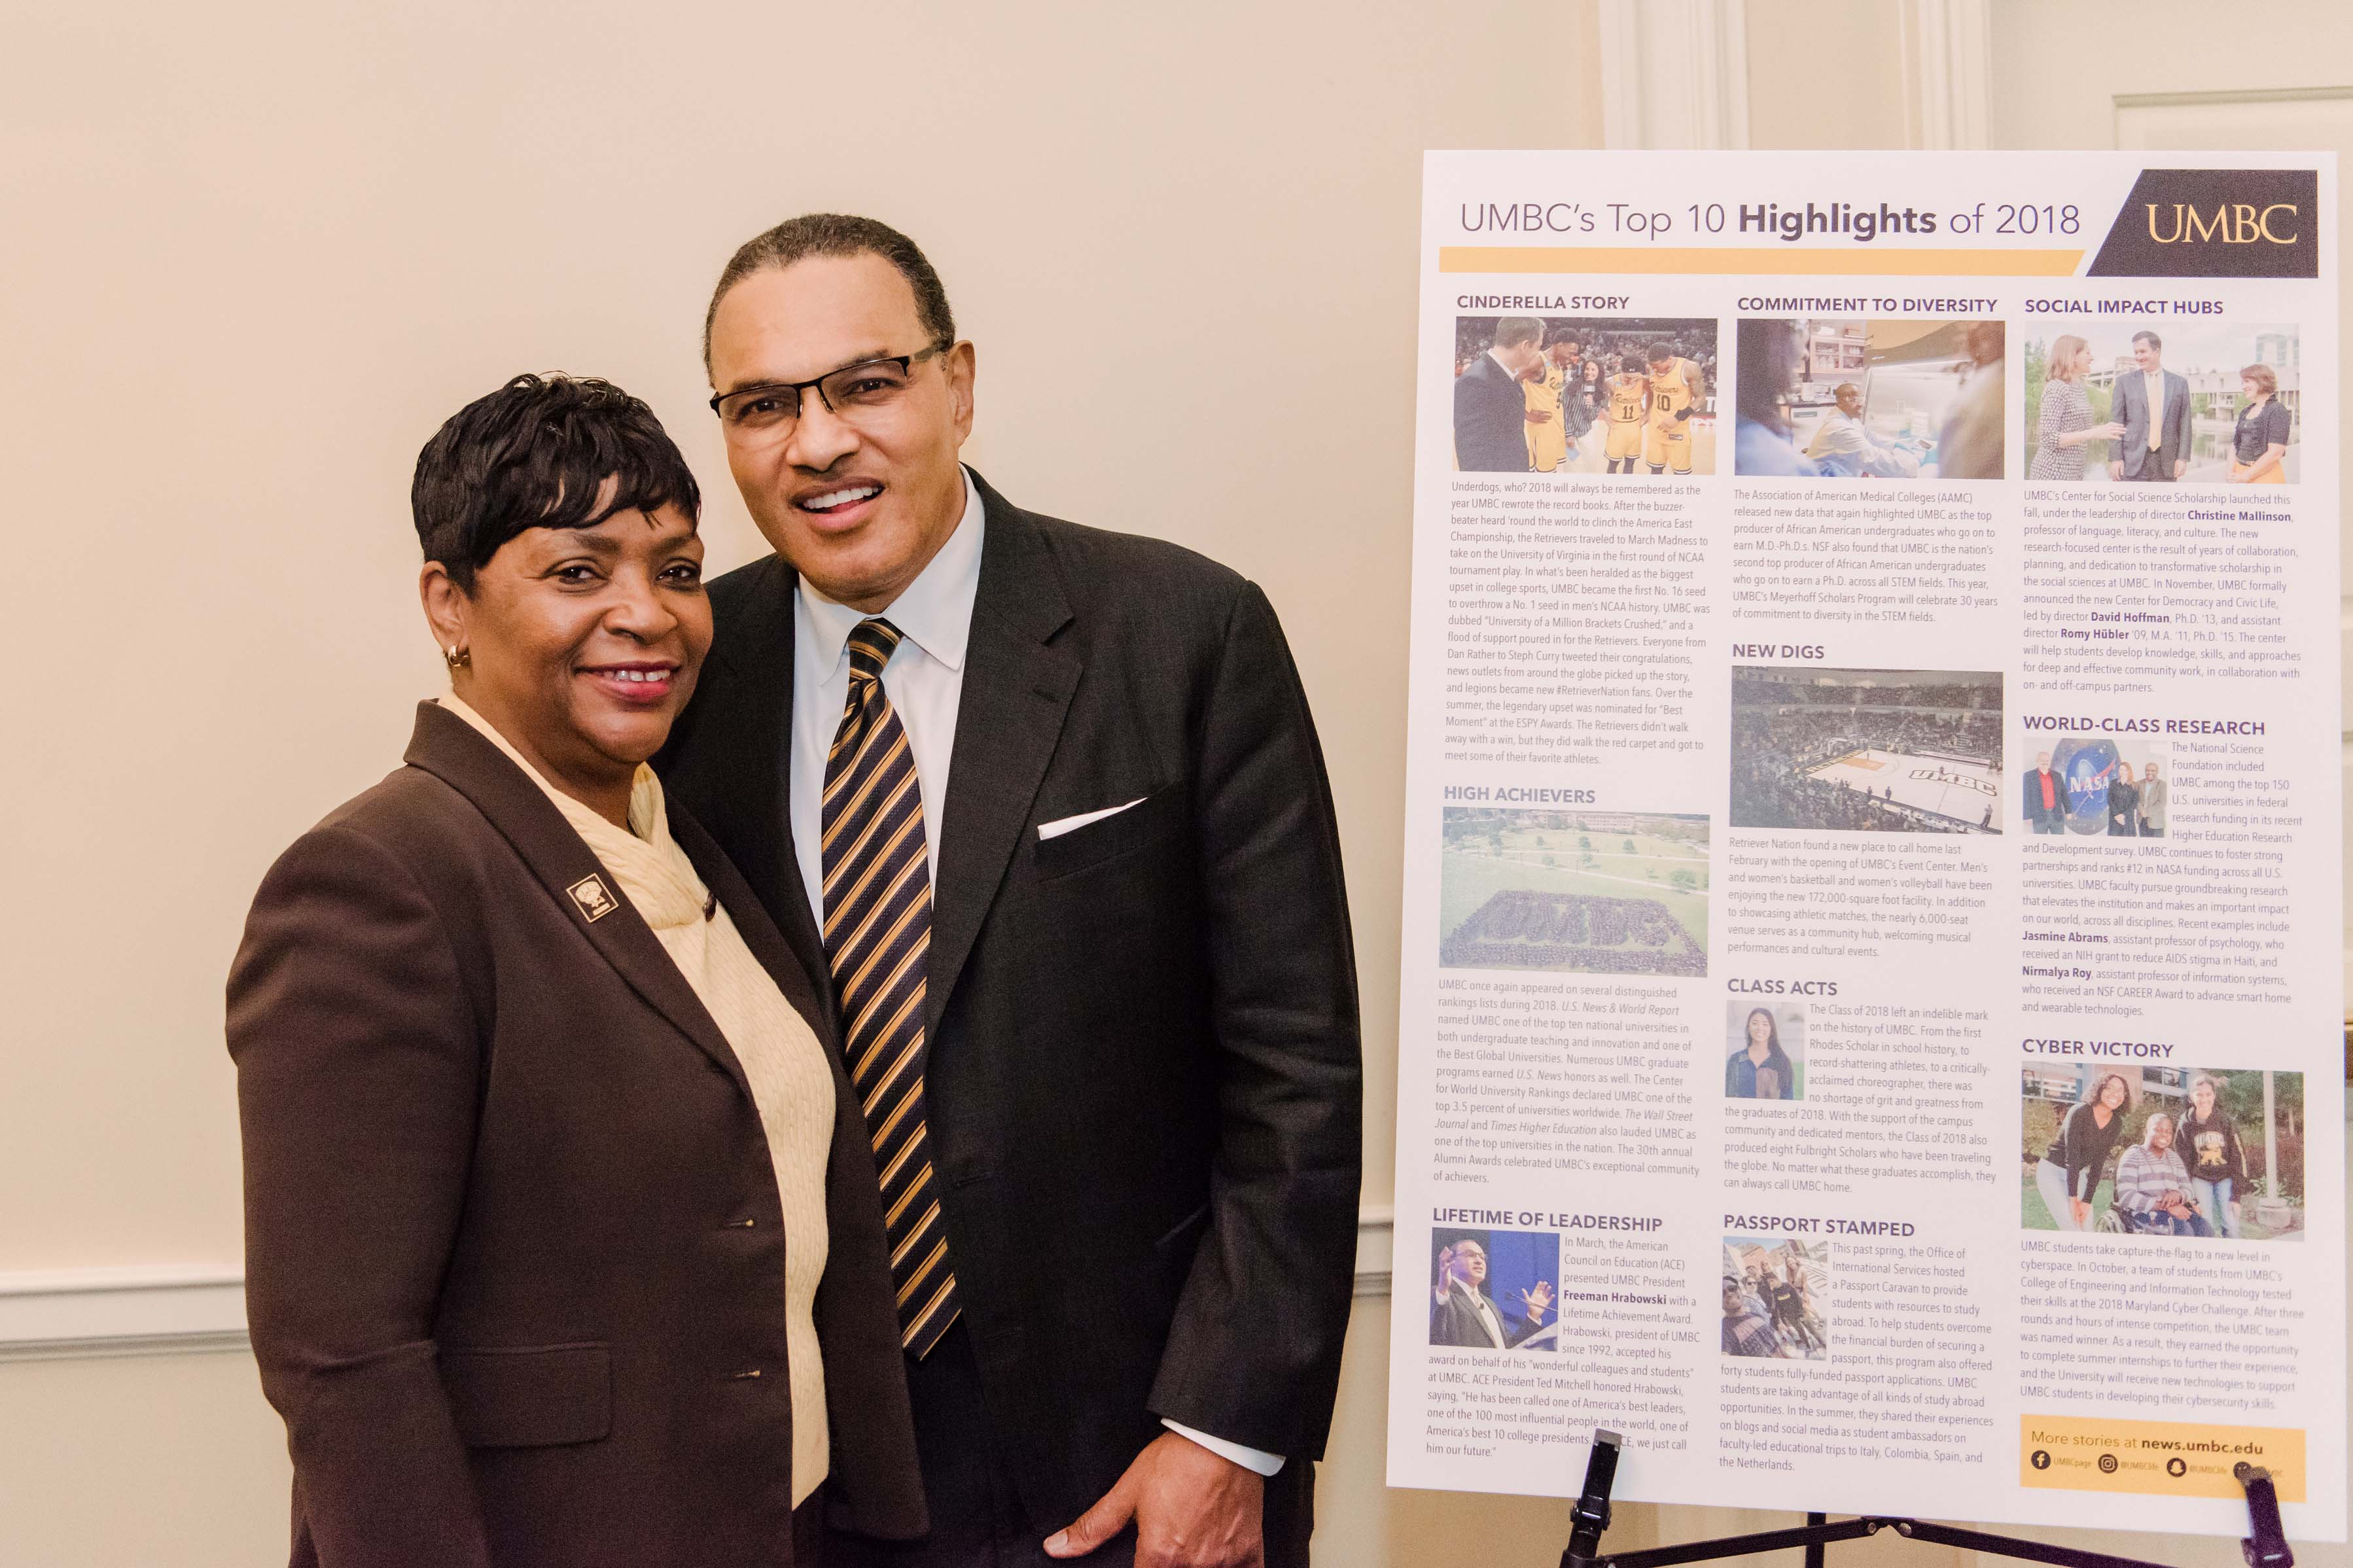 Woman poses with Hrabowski UMBC's top 10 highlights of 2018 sign in background